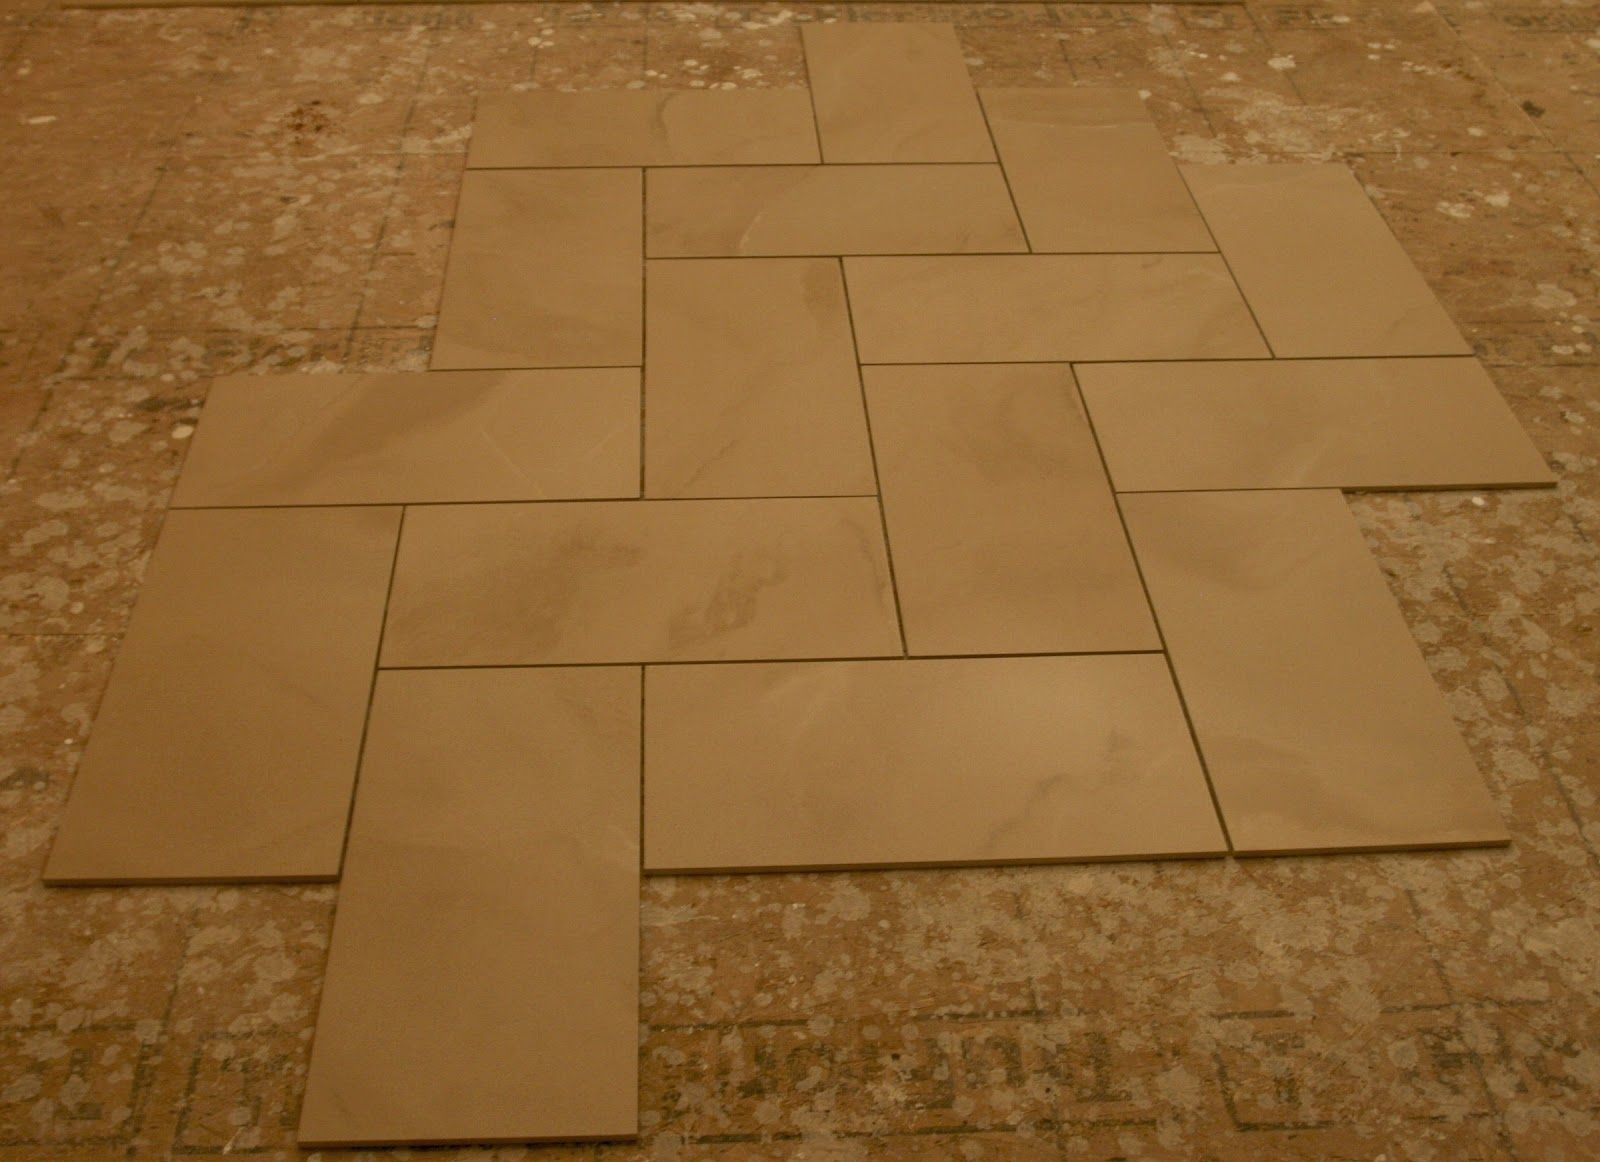 x tile patterns  floor pattern options vote for your  - captivating rectangle concrete tile floor patterns for garden tile floorpatterns ideal